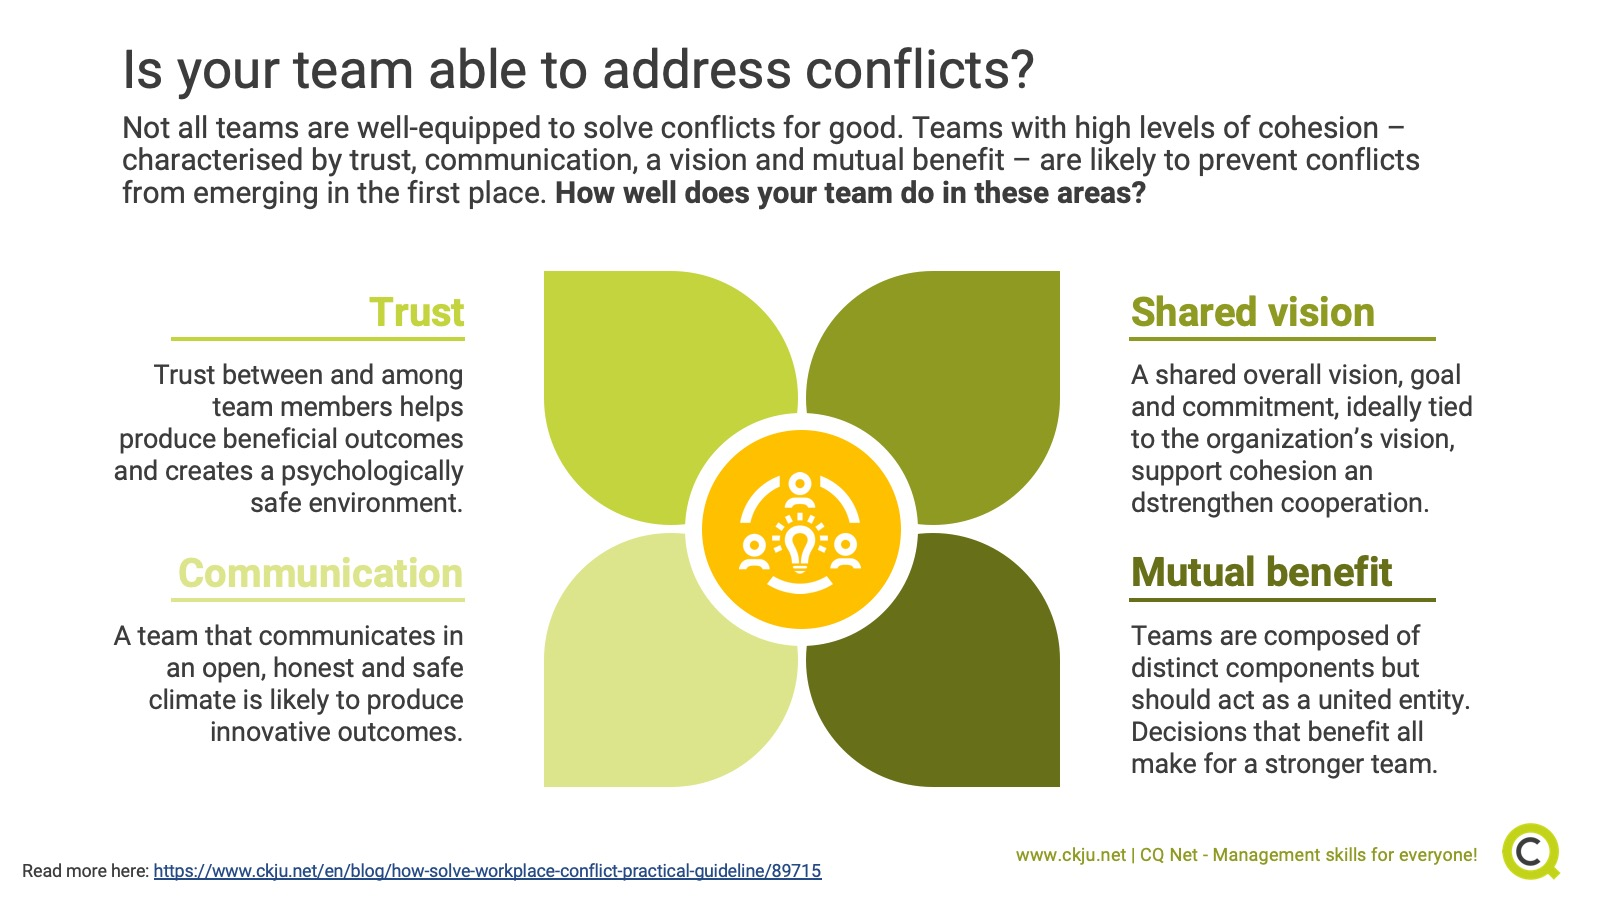 Is your team able to address conflicts?